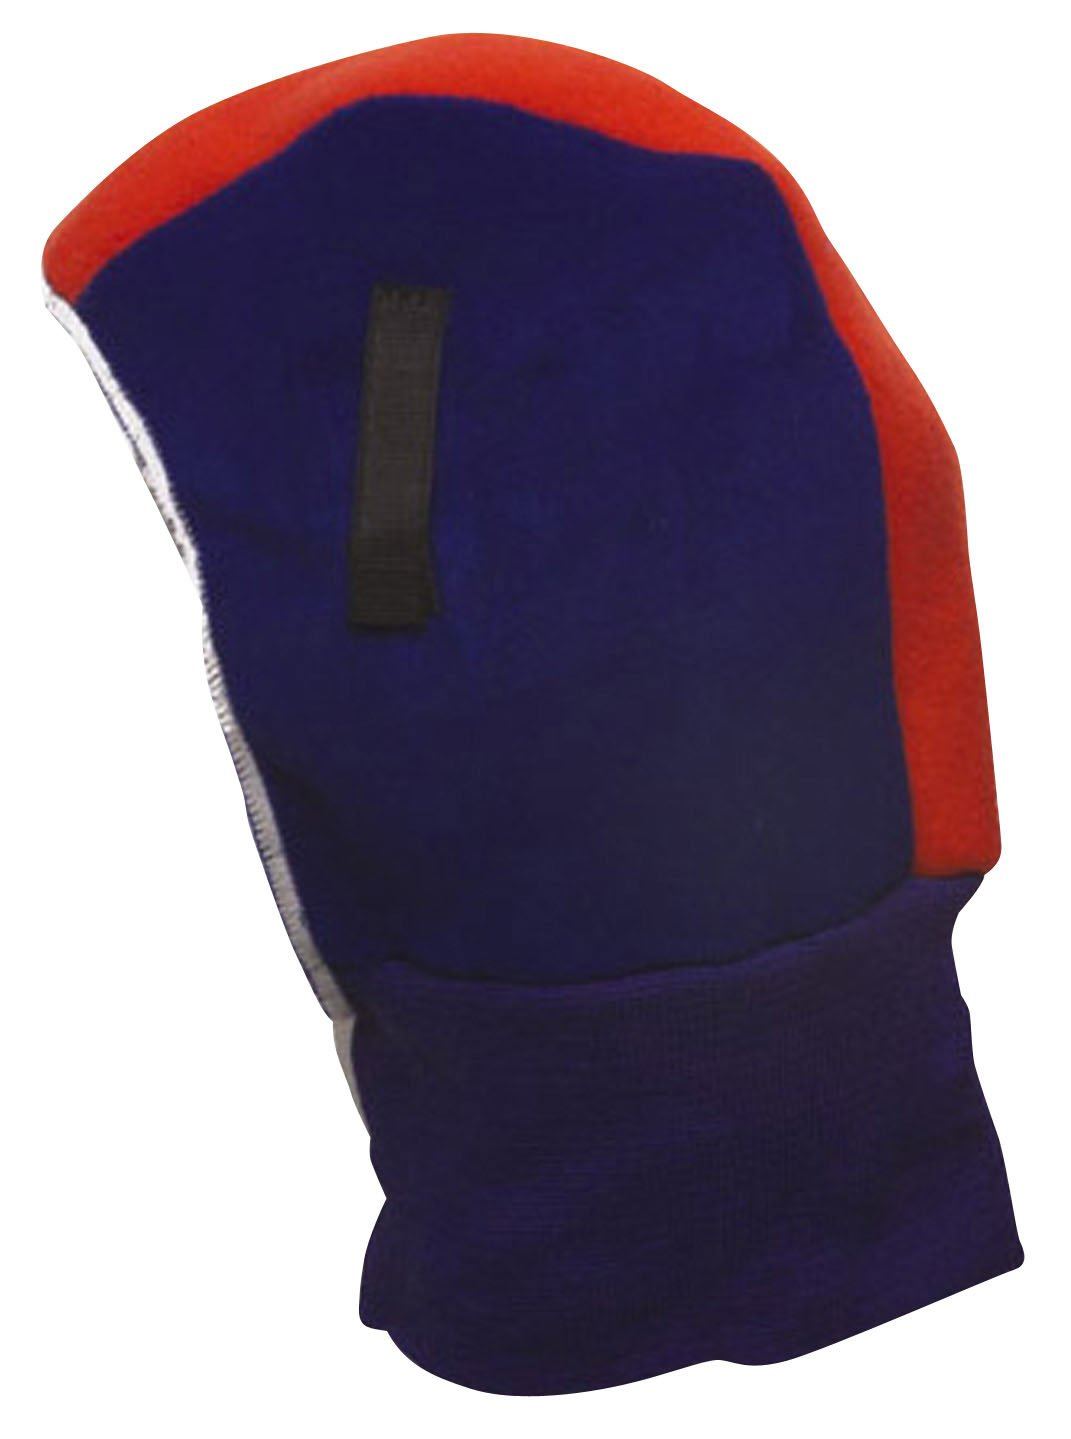 Kimberly-Clark Professional Jackson Safety 16651 Royal Blue//Red Arctic 2-in-1 Sport Winter Liner Pack of 3